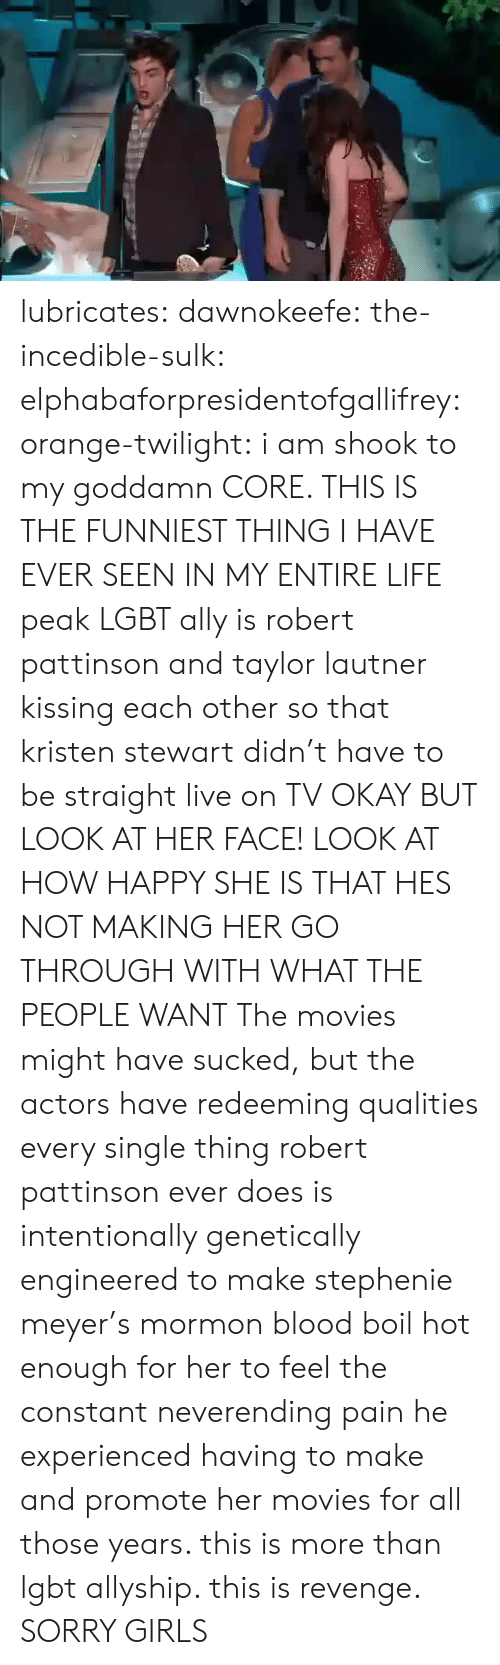 Ally: lubricates: dawnokeefe:  the-incedible-sulk:  elphabaforpresidentofgallifrey:  orange-twilight: i am shook to my goddamn CORE. THIS IS THE FUNNIEST THING I HAVE EVER SEEN IN MY ENTIRE LIFE peak LGBT ally is robert pattinson and taylor lautner kissing each other so that kristen stewart didn't have to be straight live on TV   OKAY BUT LOOK AT HER FACE! LOOK AT HOW HAPPY SHE IS THAT HES NOT MAKING HER GO THROUGH WITH WHAT THE PEOPLE WANT  The movies might have sucked, but the actors have redeeming qualities   every single thing robert pattinson ever does is intentionally genetically engineered to make stephenie meyer's mormon blood boil hot enough for her to feel the constant neverending pain he experienced having to make and promote her movies for all those years. this is more than lgbt allyship. this is revenge.  SORRY GIRLS